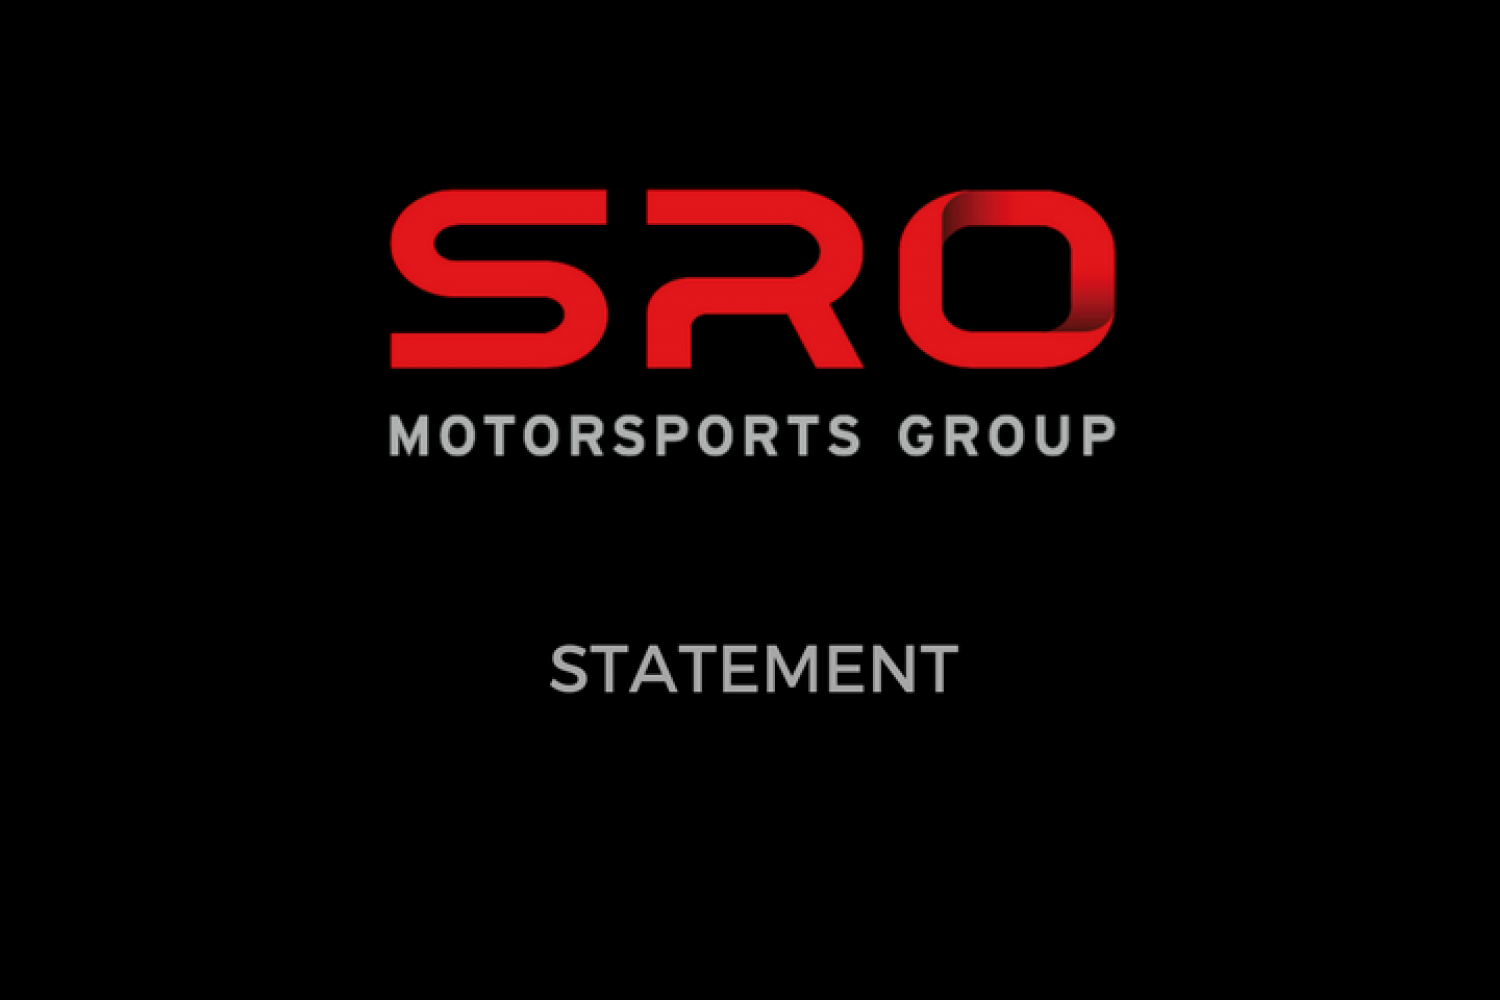 Statement from SRO Motorsports Group regarding Andy Meyrick and Jurgen Krebs